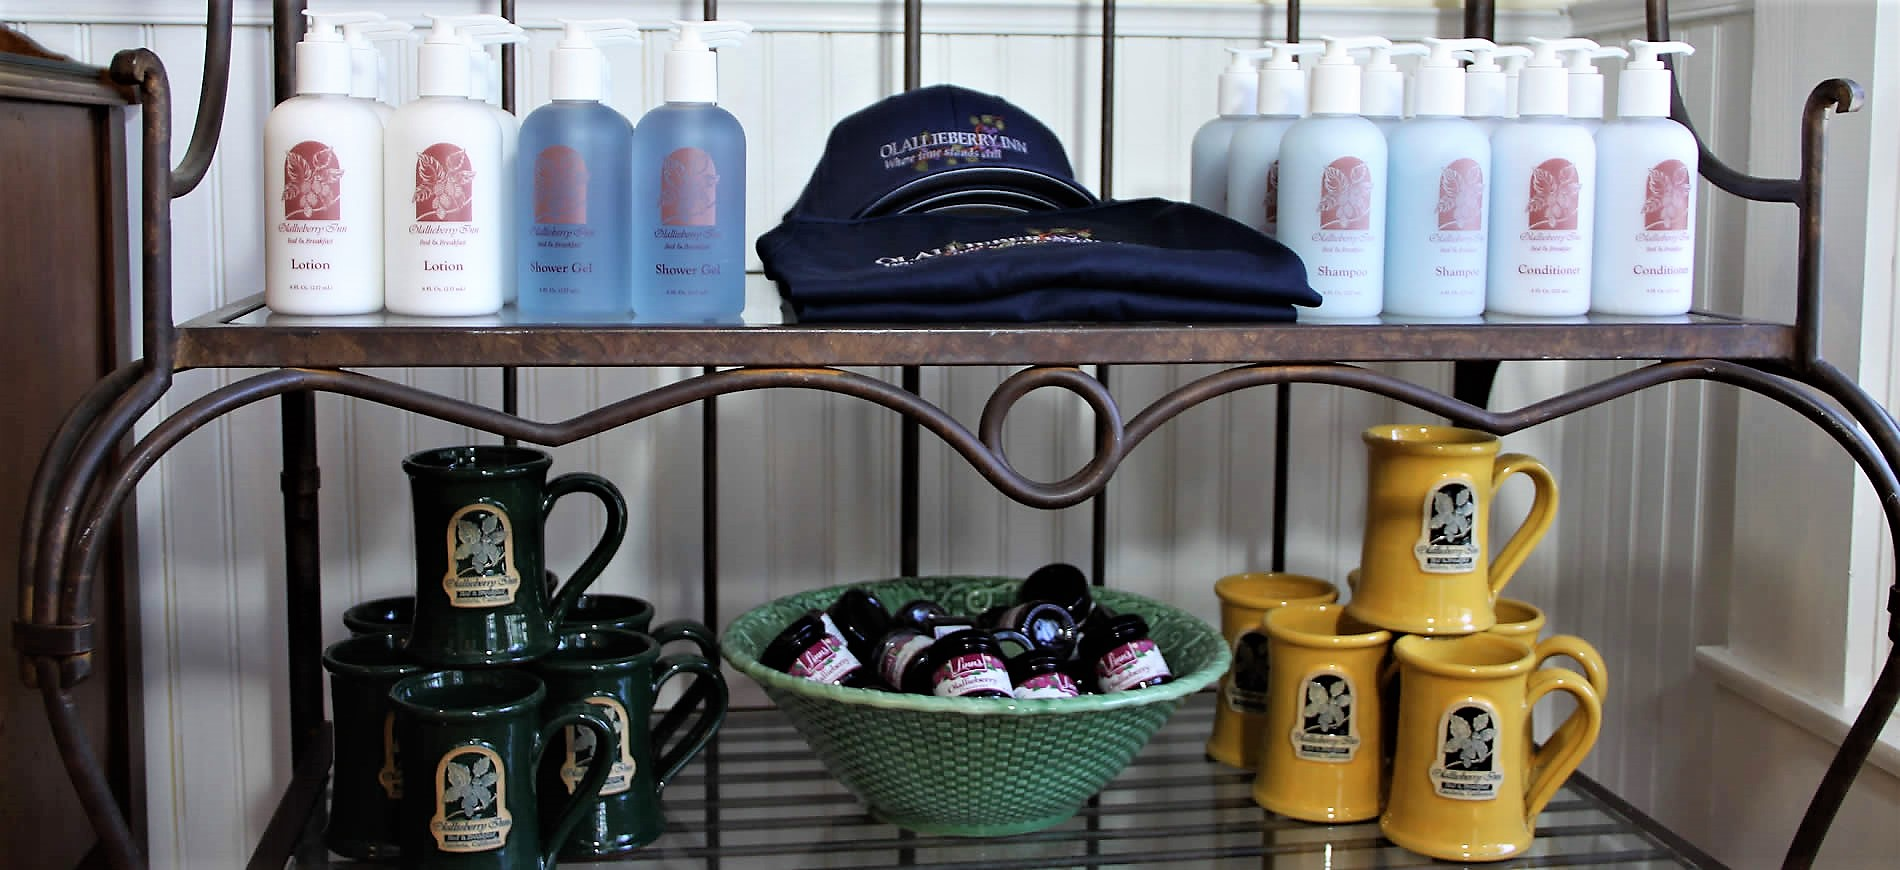 olallieberry inn gift shop with hats, lotion and cups